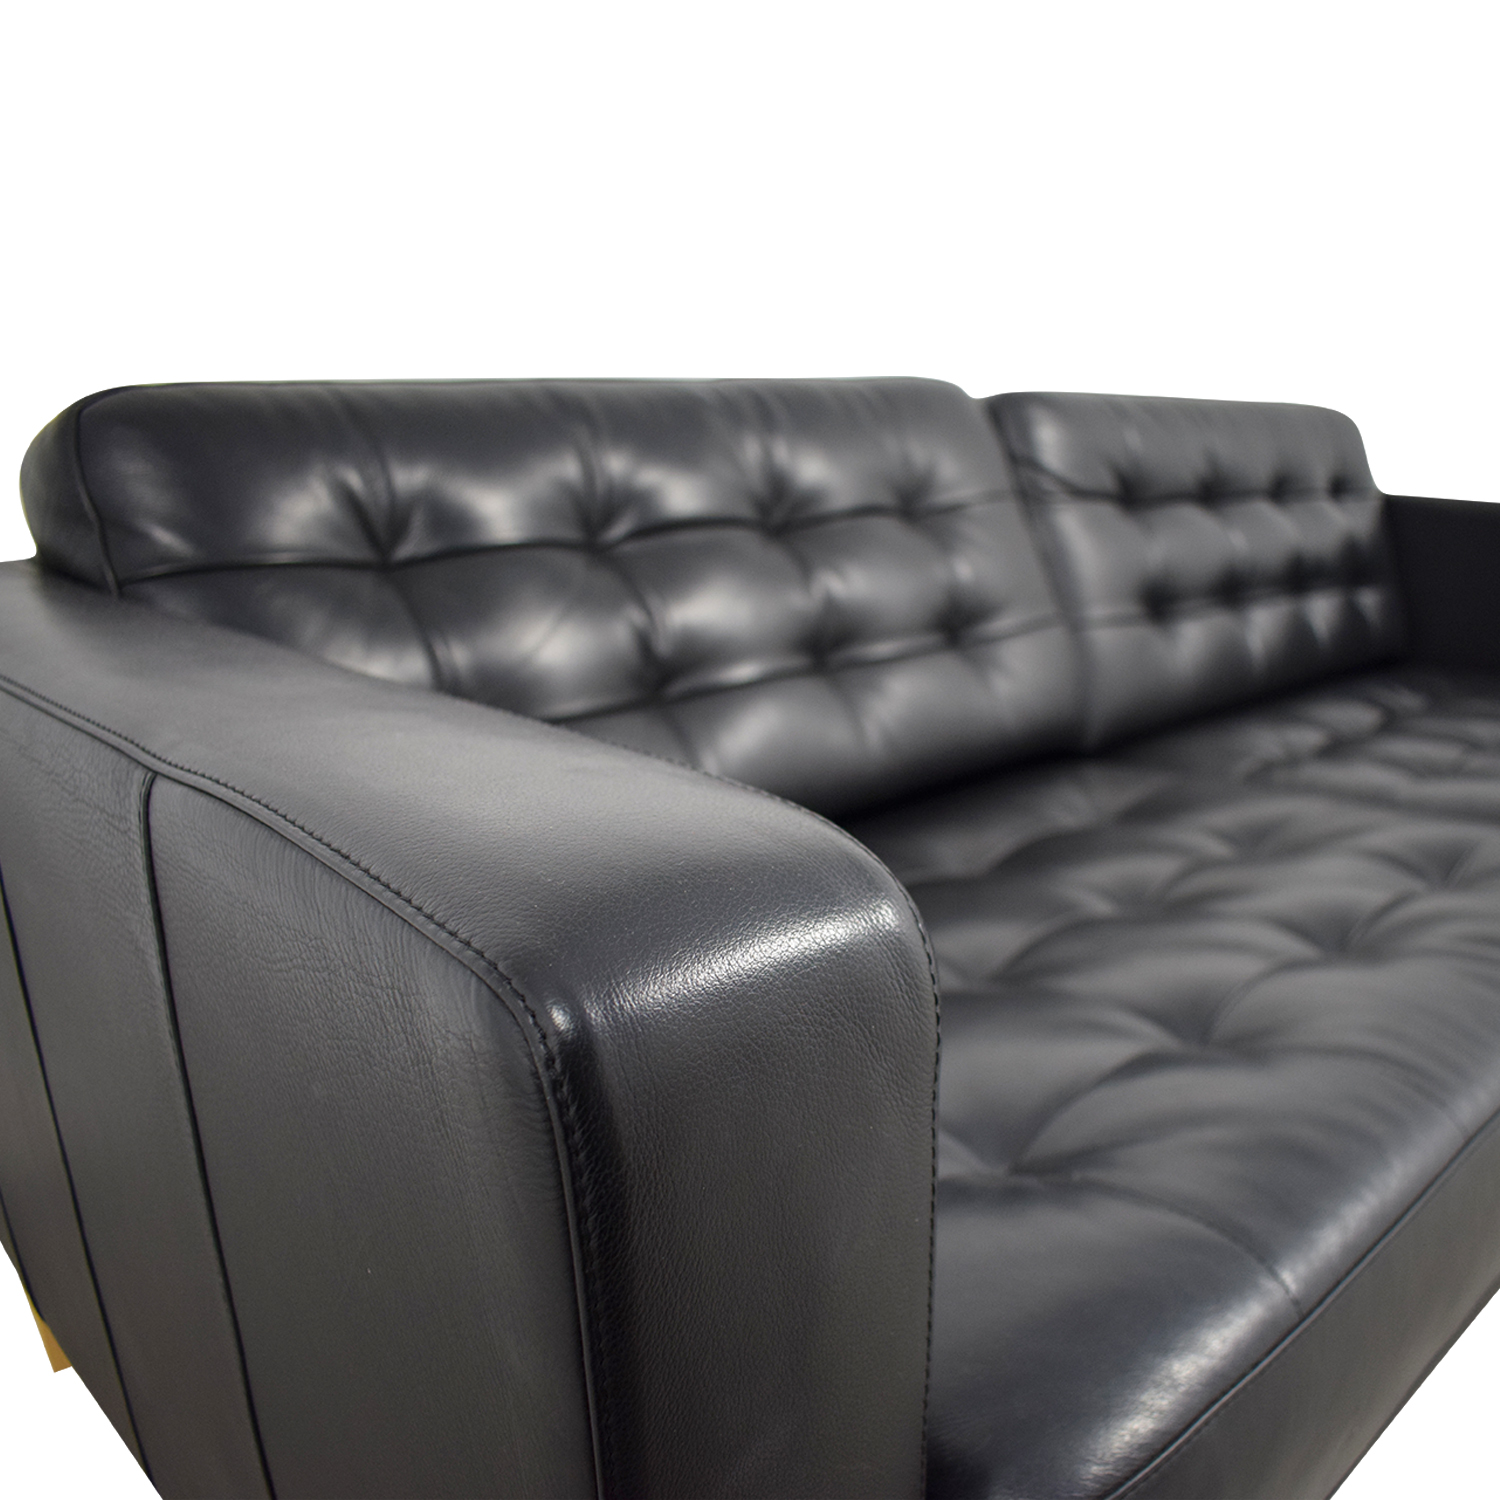 Enjoyable 65 Off Ikea Ikea Landskrona Black Tufted Leather Sofa Sofas Creativecarmelina Interior Chair Design Creativecarmelinacom